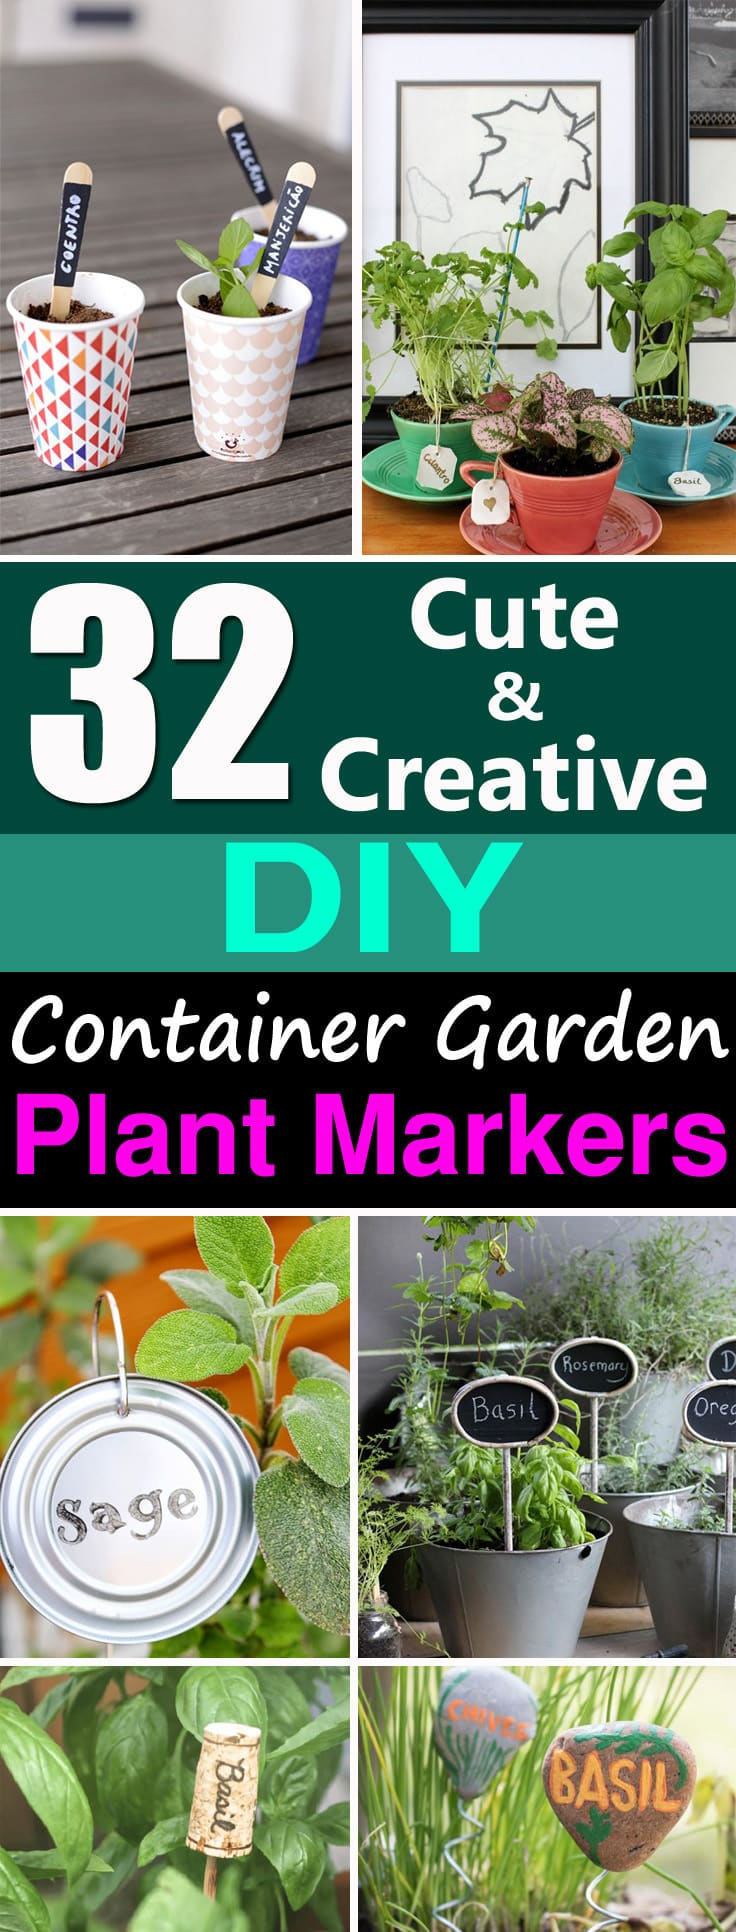 Learn how to create Garden Markers for your container garden, choose from this extensive list of 32 DIY Plant Marker Ideas!